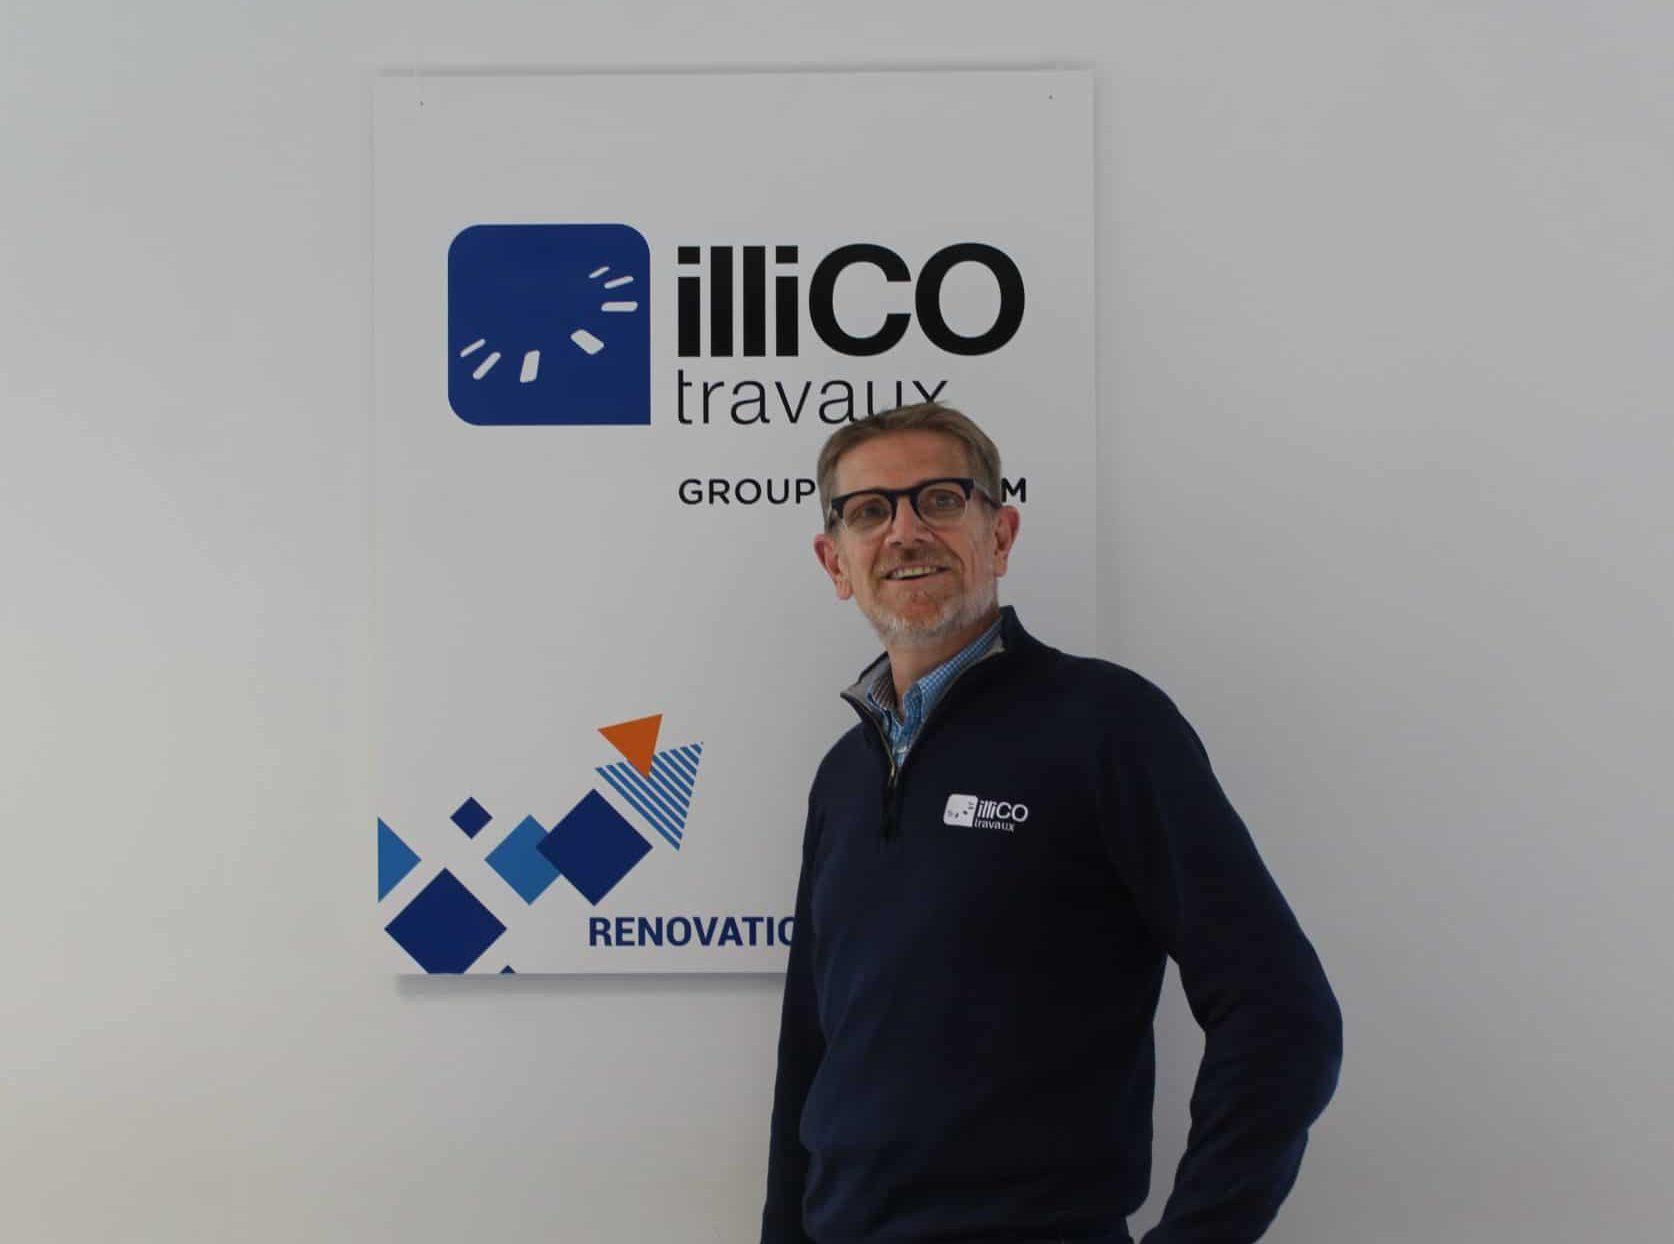 illiCO travaux Dax – Hossegor – Soustons